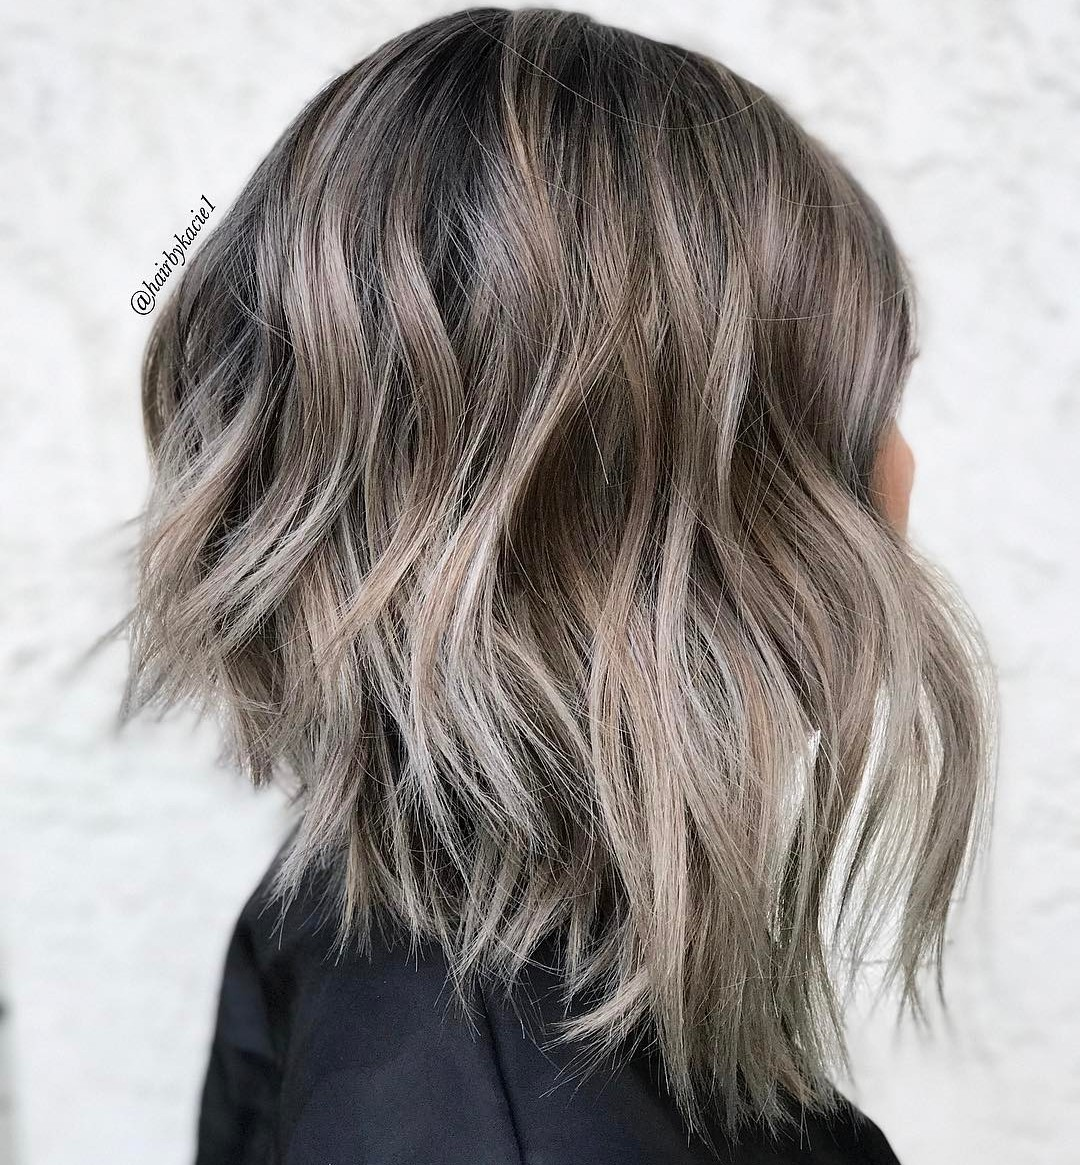 30 Chic Long Inverted Bobs to Inspire Your 3030 Makeover